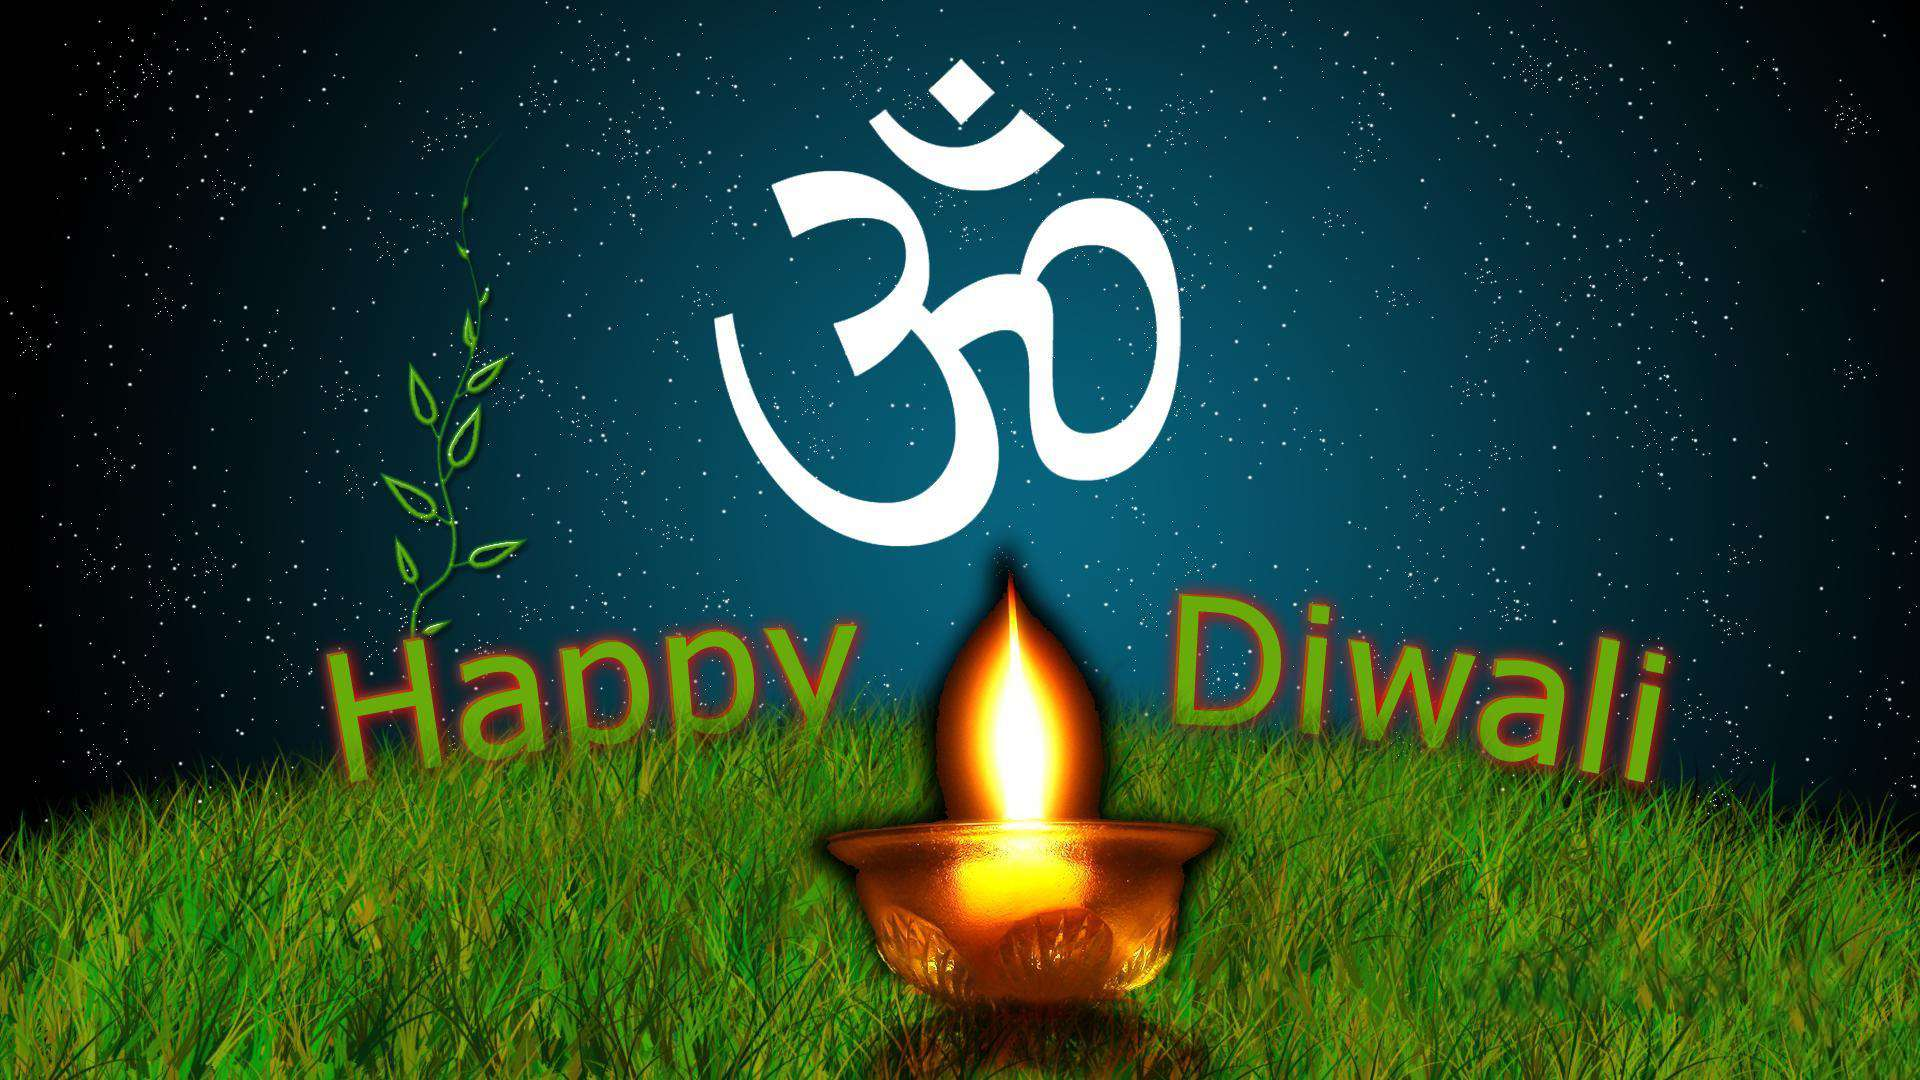 essay on diwali photos Essay on diwali 1,007 likes essay on diwali - quality support for writing your homework online 24/7 save your time essay on diwali updated their cover photo.